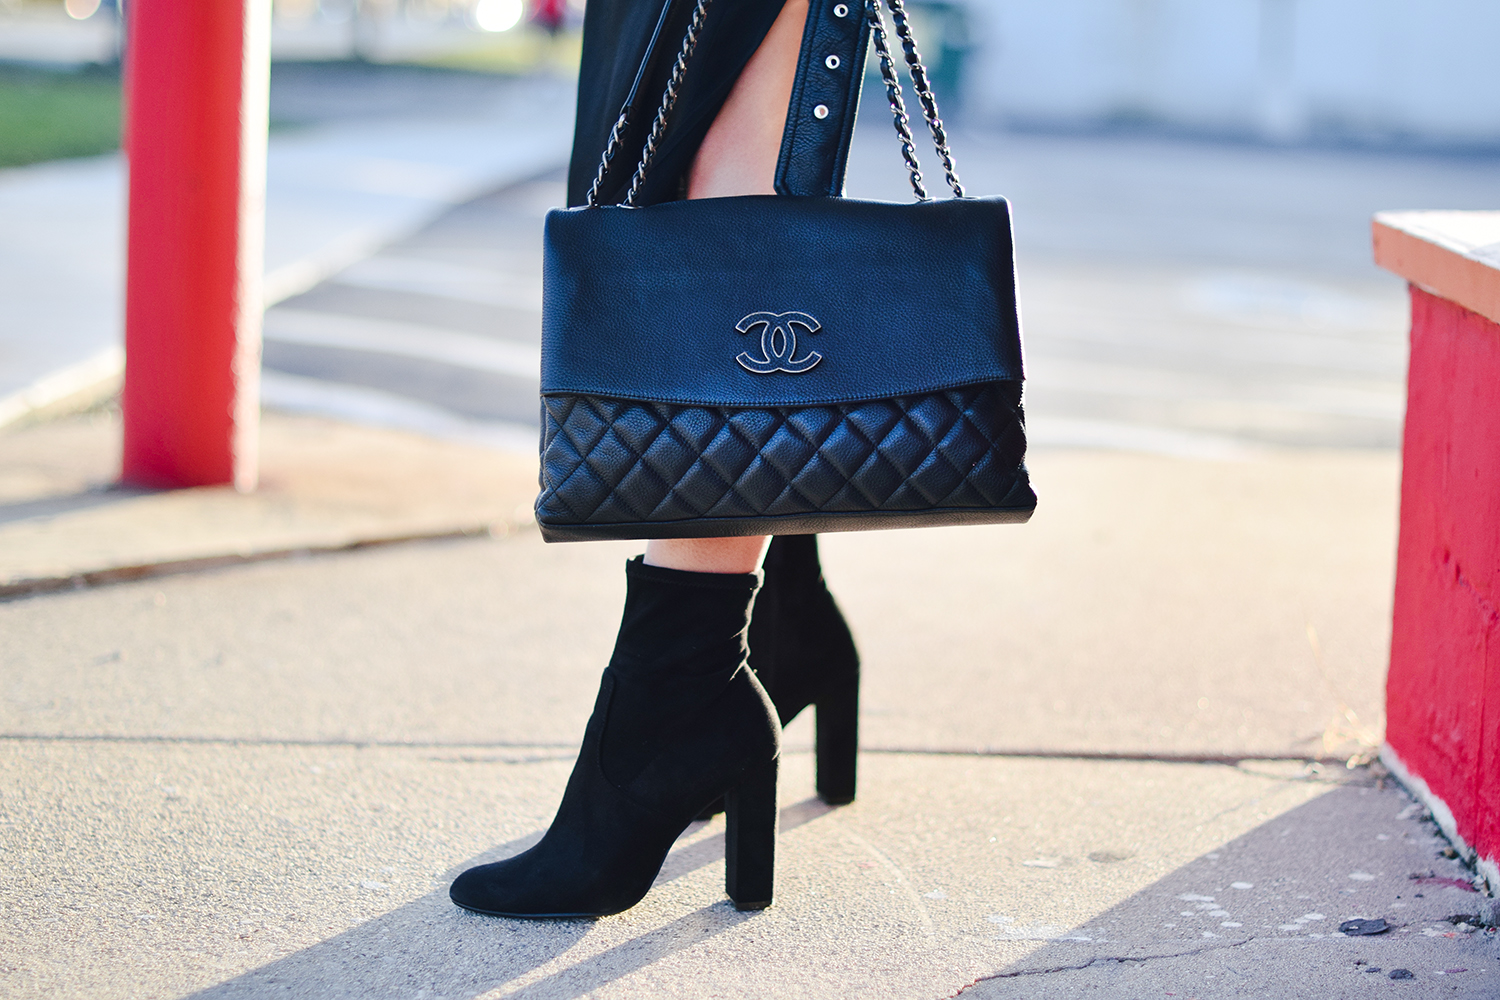 chanel-purse-black-suede-booties